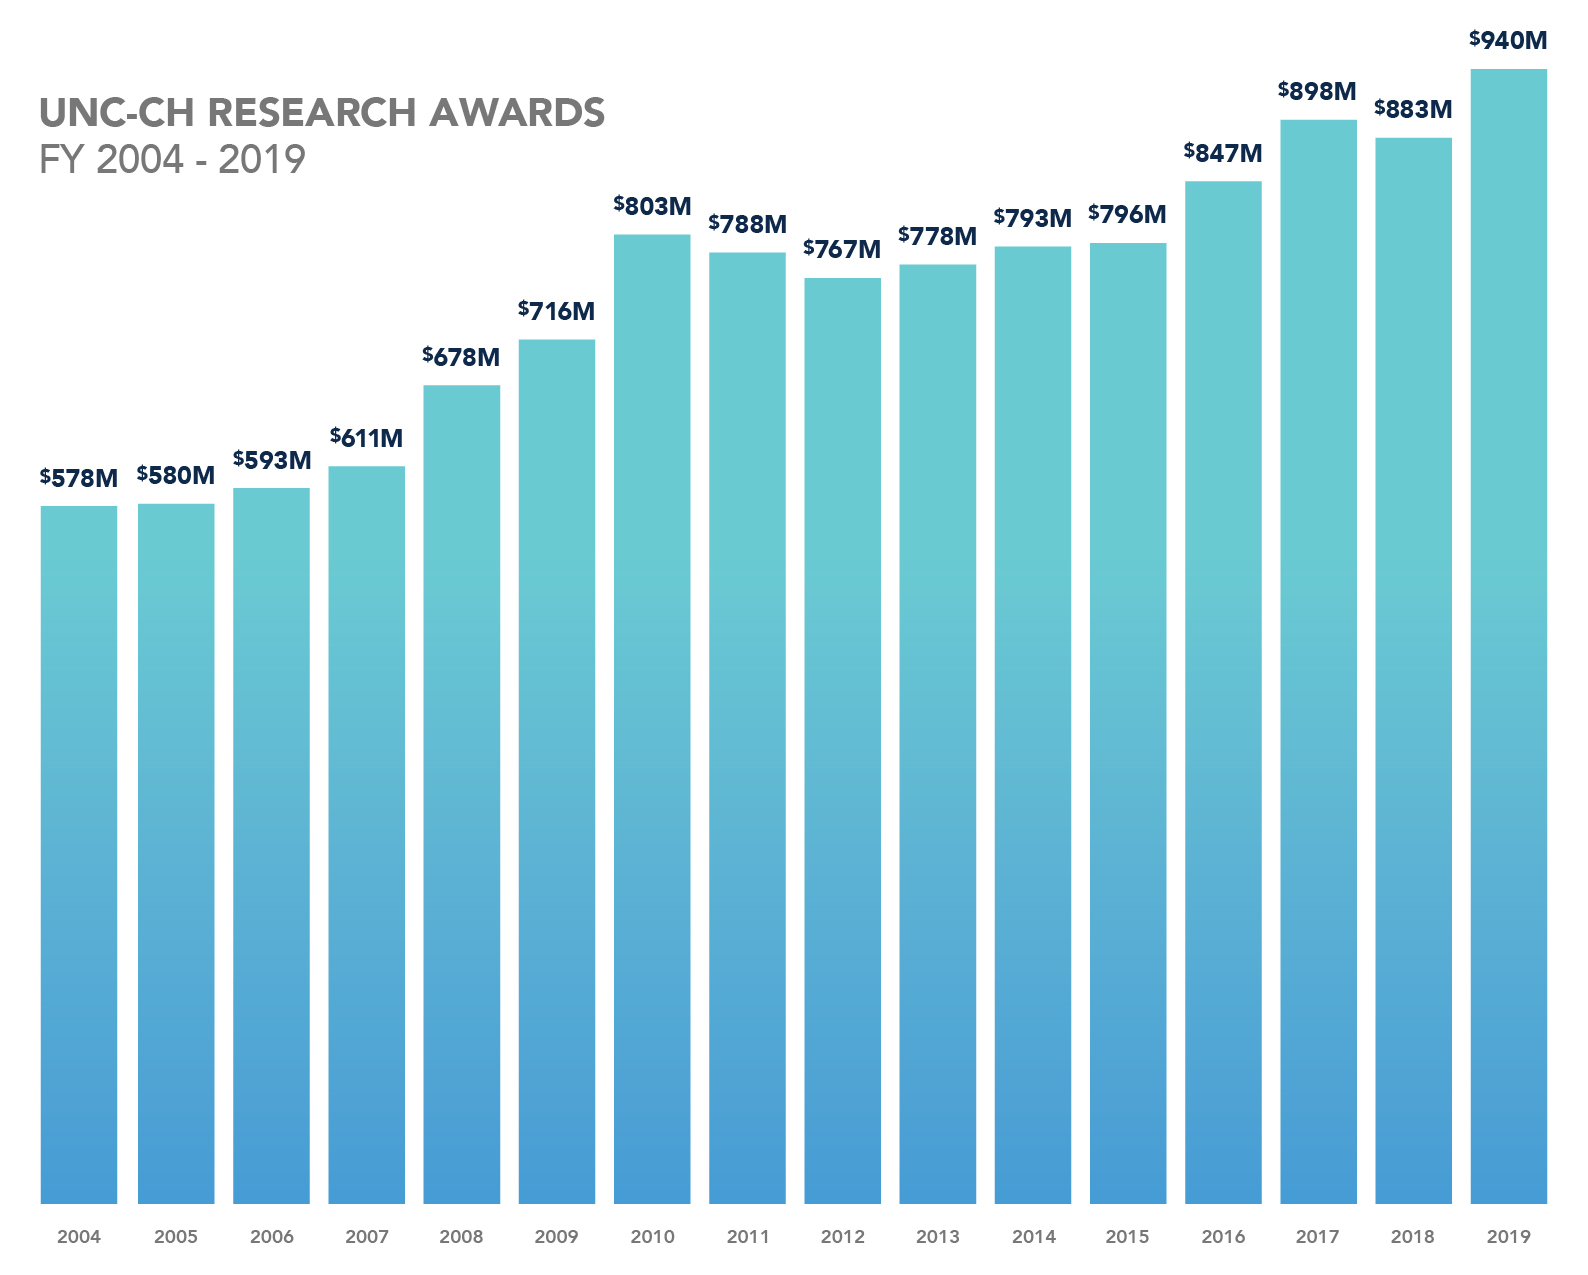 UNC at Chapel Hill's Research Awards from 2004 to 2019. In 2004, awarded 578 million dollars. In 2005, awarded 580 million dollars. In 2006, awarded 593 million dollars. In 2007, awarded 611 million dollars. In 2008, awarded 678 million dollars. In 2009, awarded 716 million dollars. In 2010, awarded 803 million dollars. In 2011, awarded 788 million dollars. In 2012, awarded 767 million dollars. In 2013, awarded 778 million dollars. In 2014, awarded 793 million dollars. In 2015, awarded 796 million dollars. In 2016, awarded 847 million dollars. In 2017, awarded 898 million dollars. In 2018, awarded 883 million dollars. In 2019, awarded 940 million dollars.